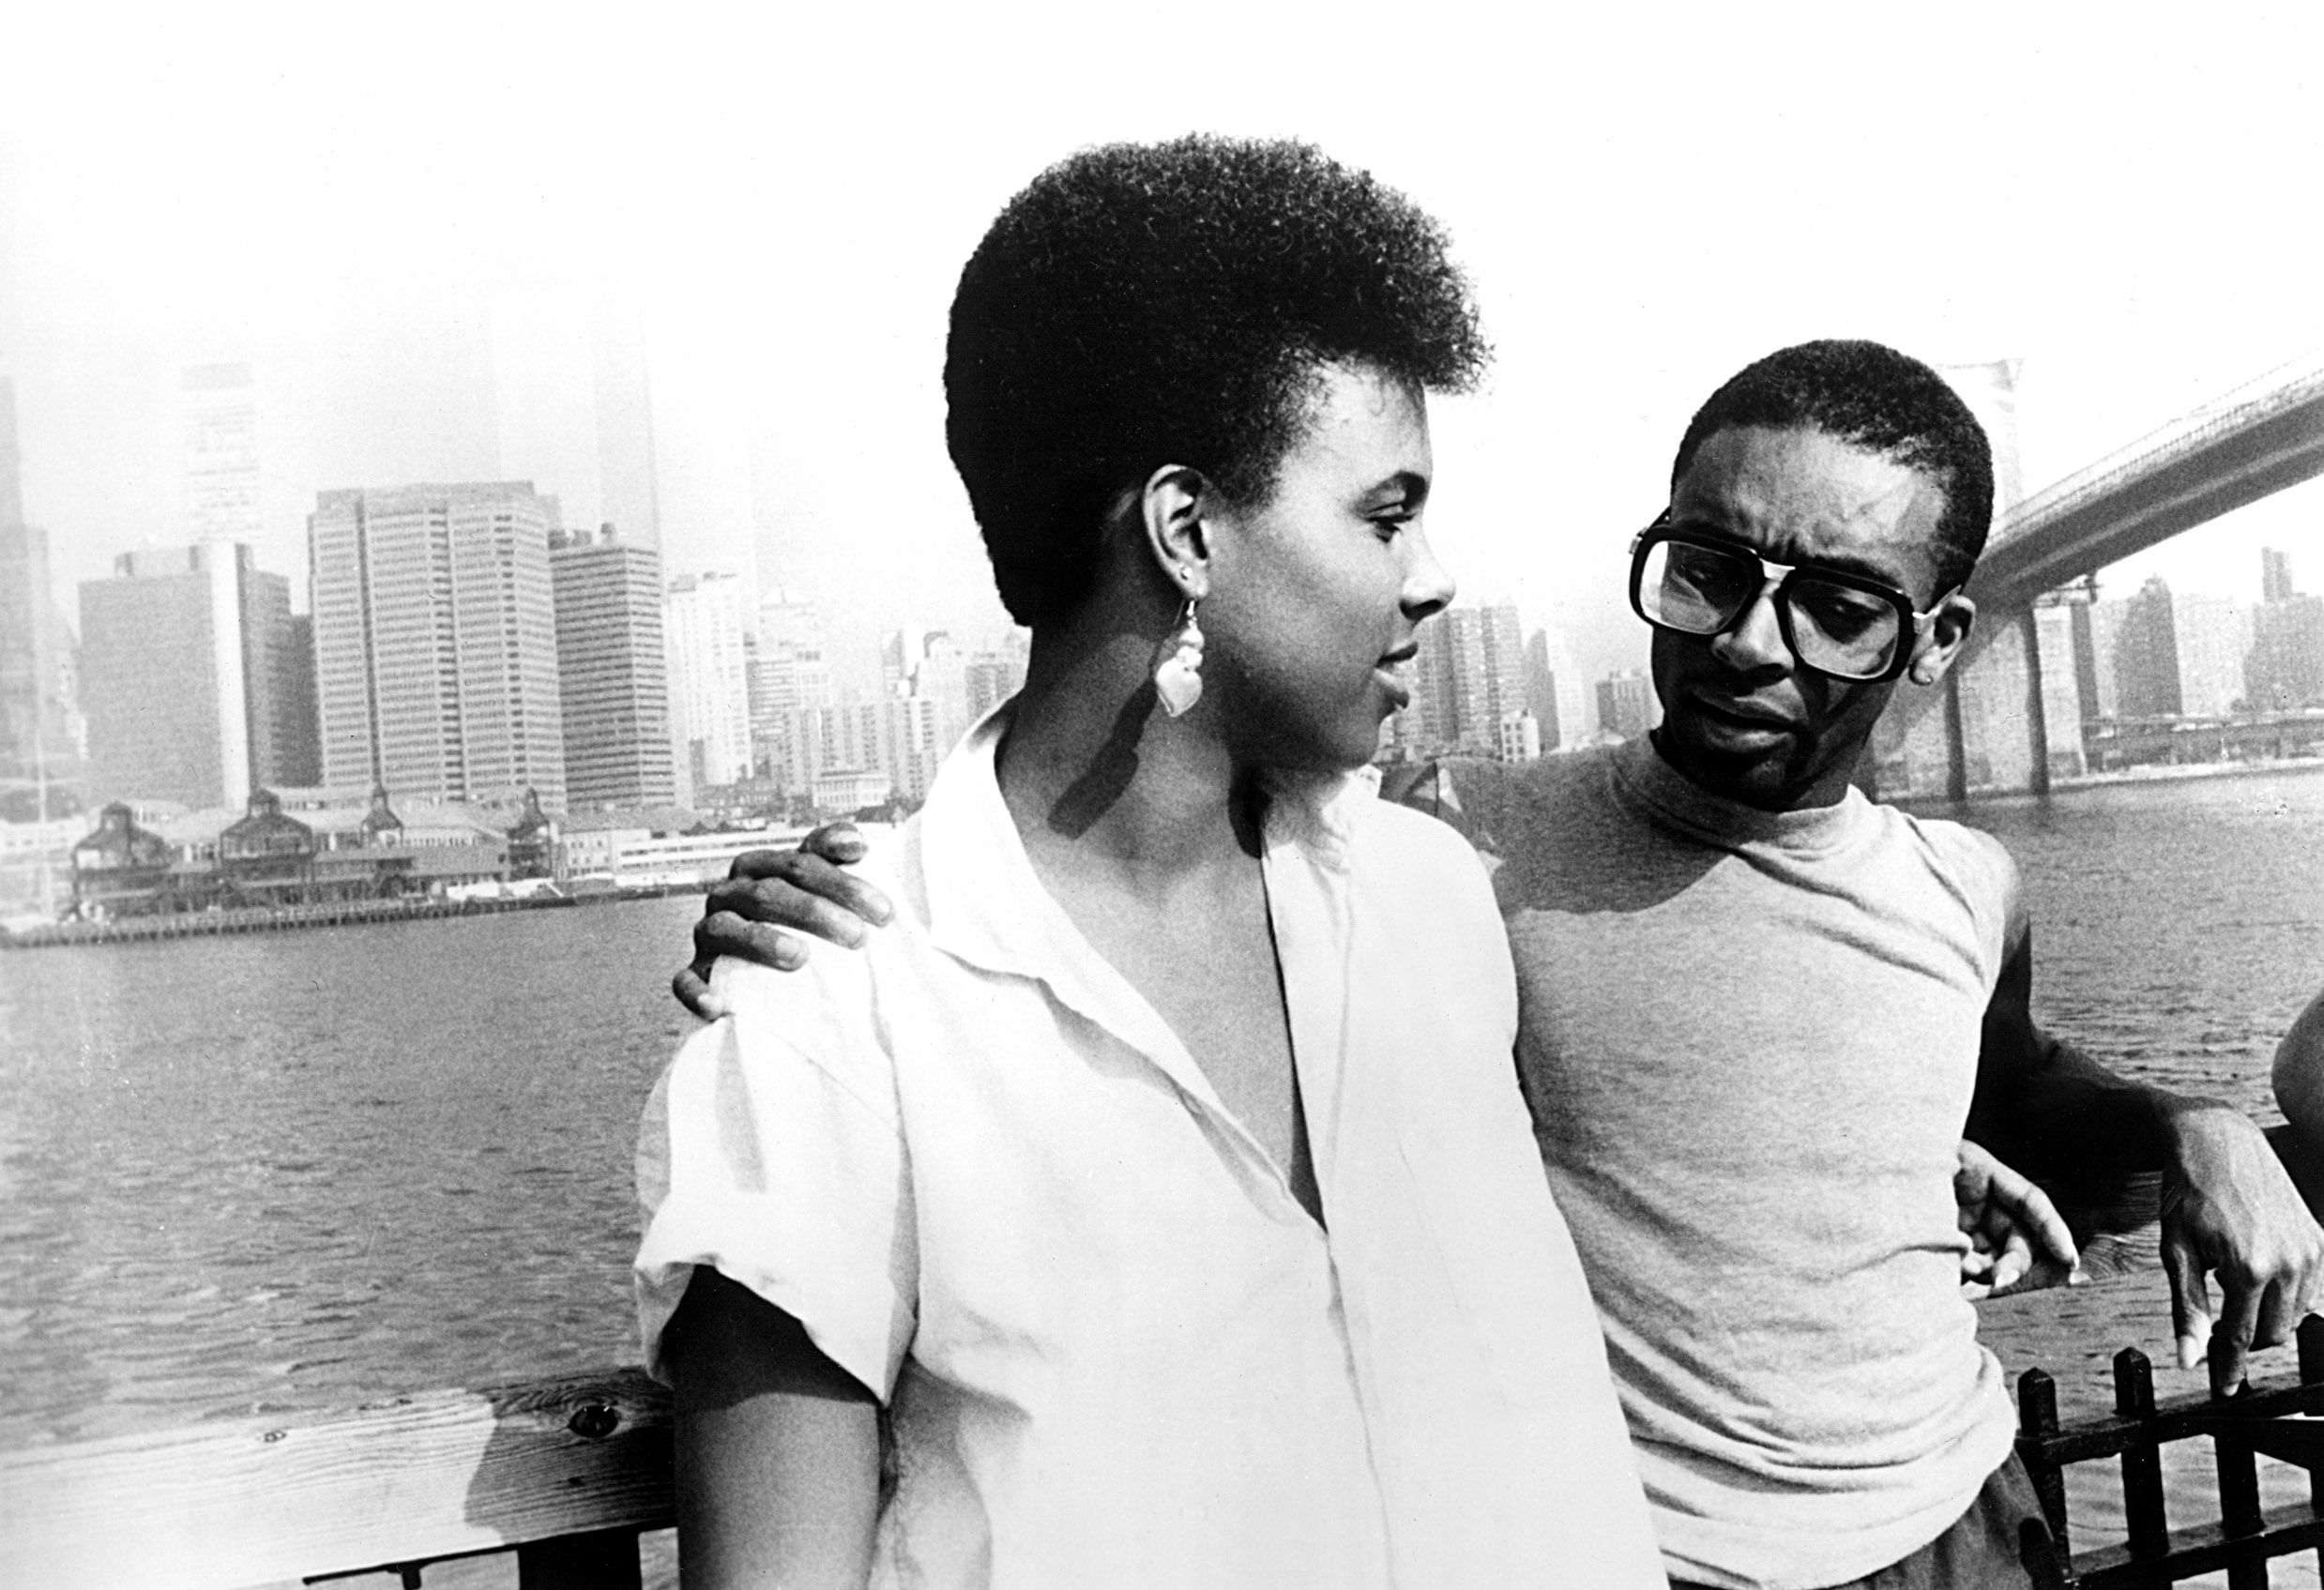 Netflix Orders Spike Lee's 'She's Gotta Have It' Scripted Series